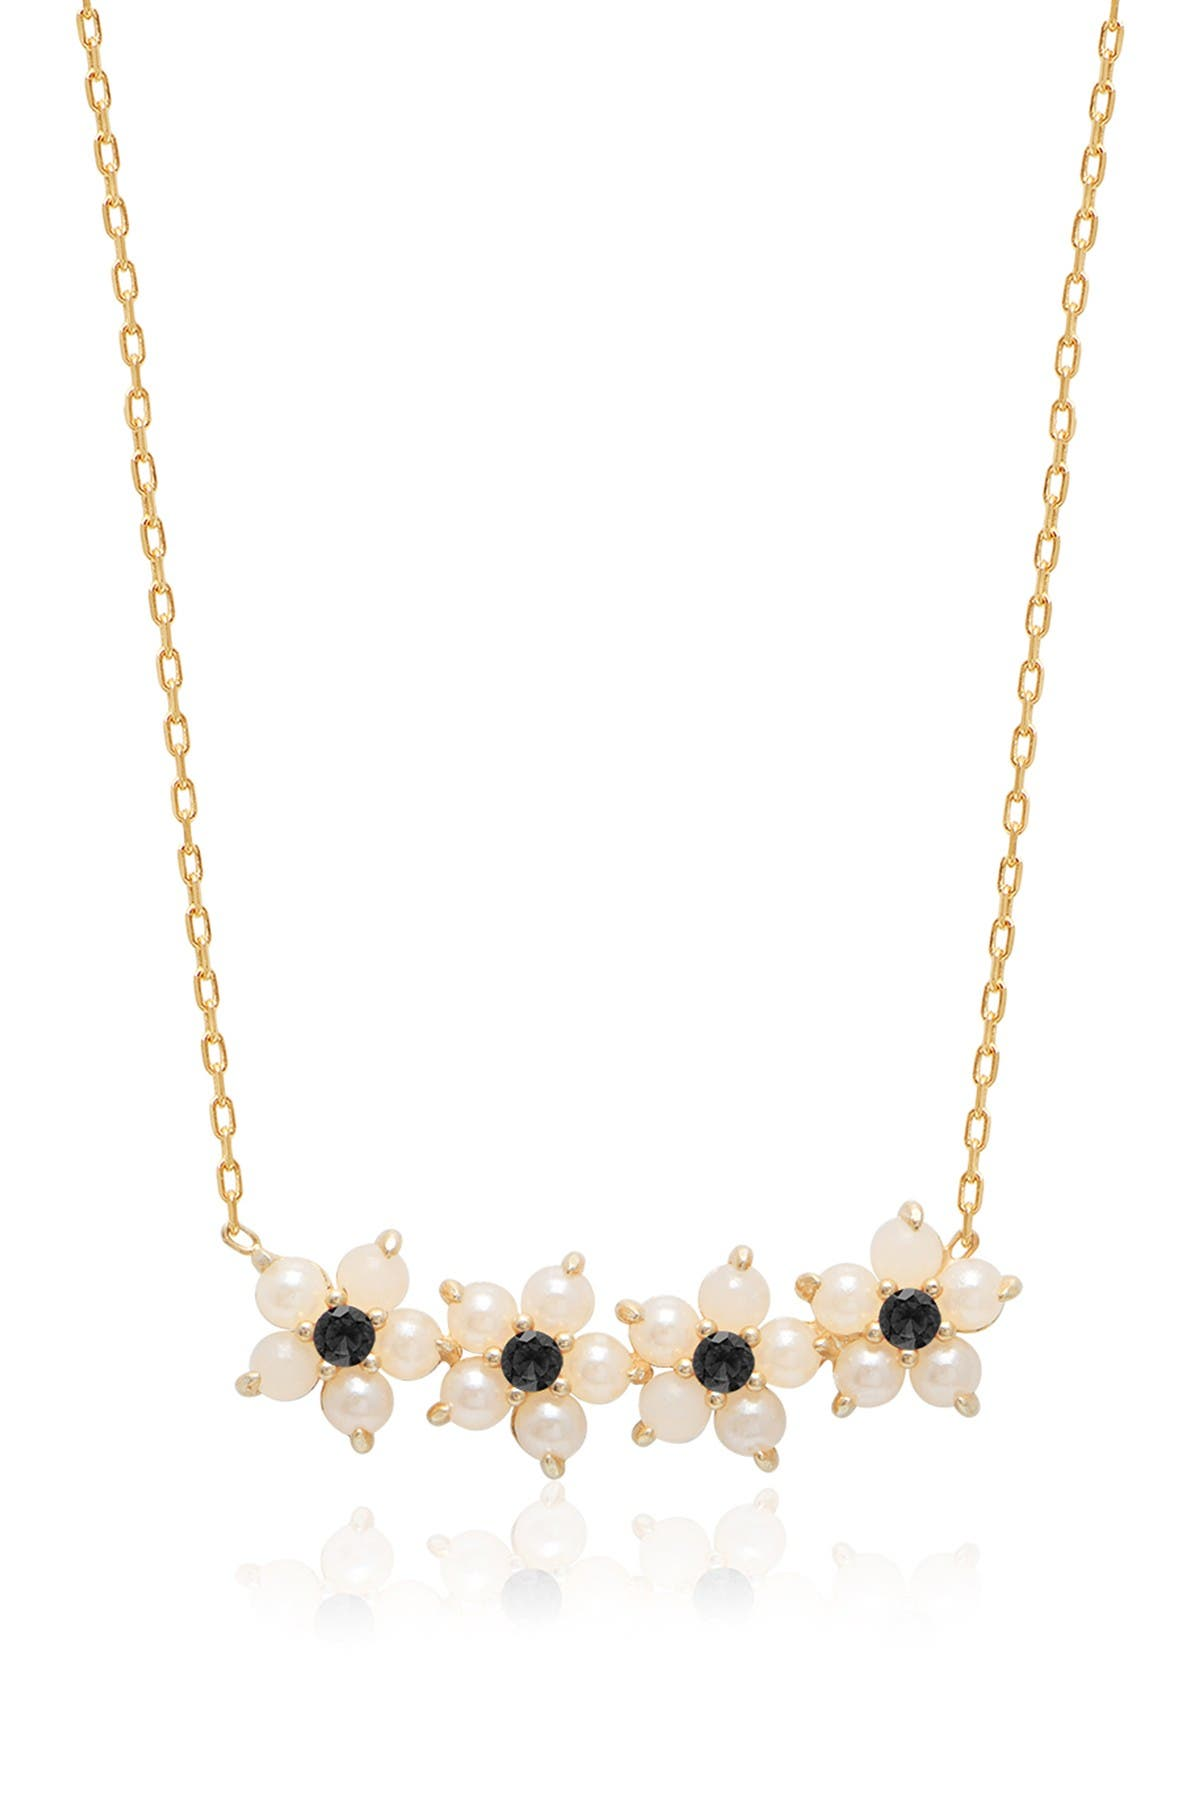 Image of Gabi Rielle Mother of Pearl & Onyx Flower Pendant Necklace